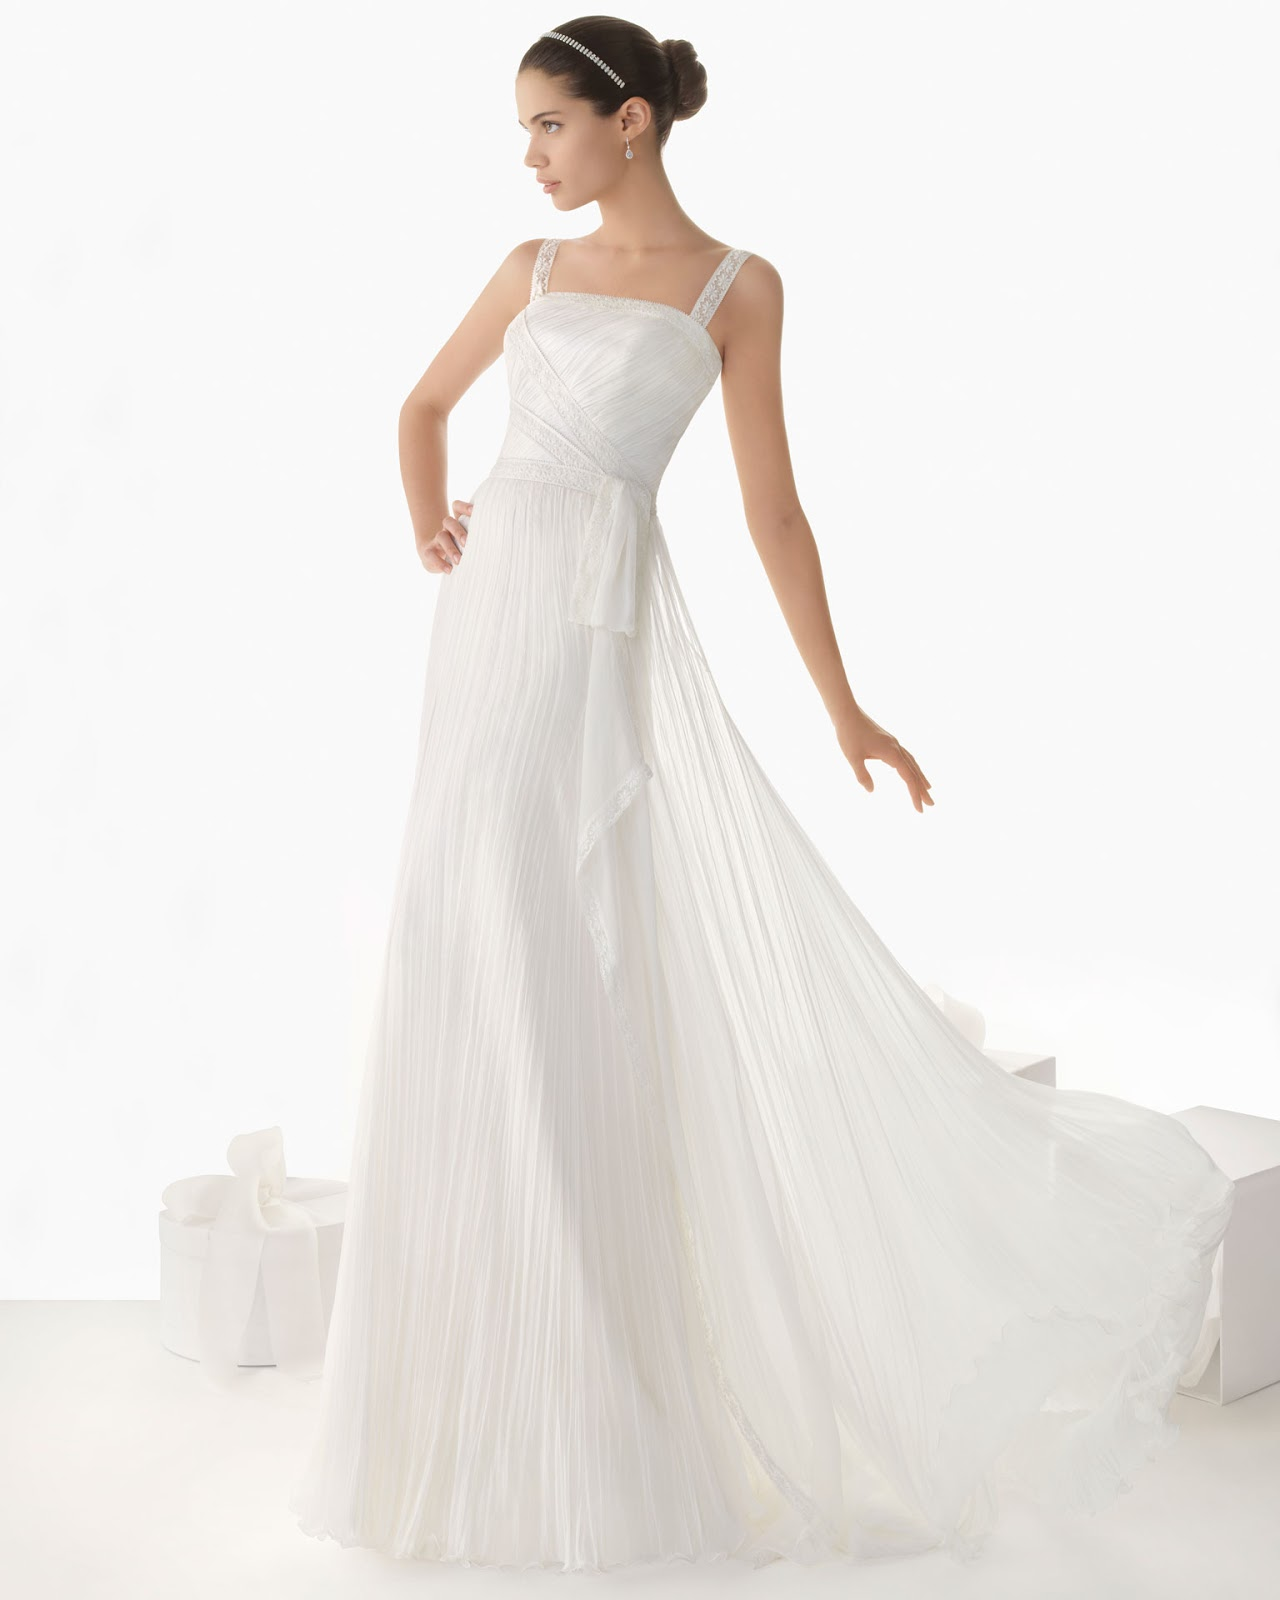 lace wedding dress 2013 spring from Rosa Clara